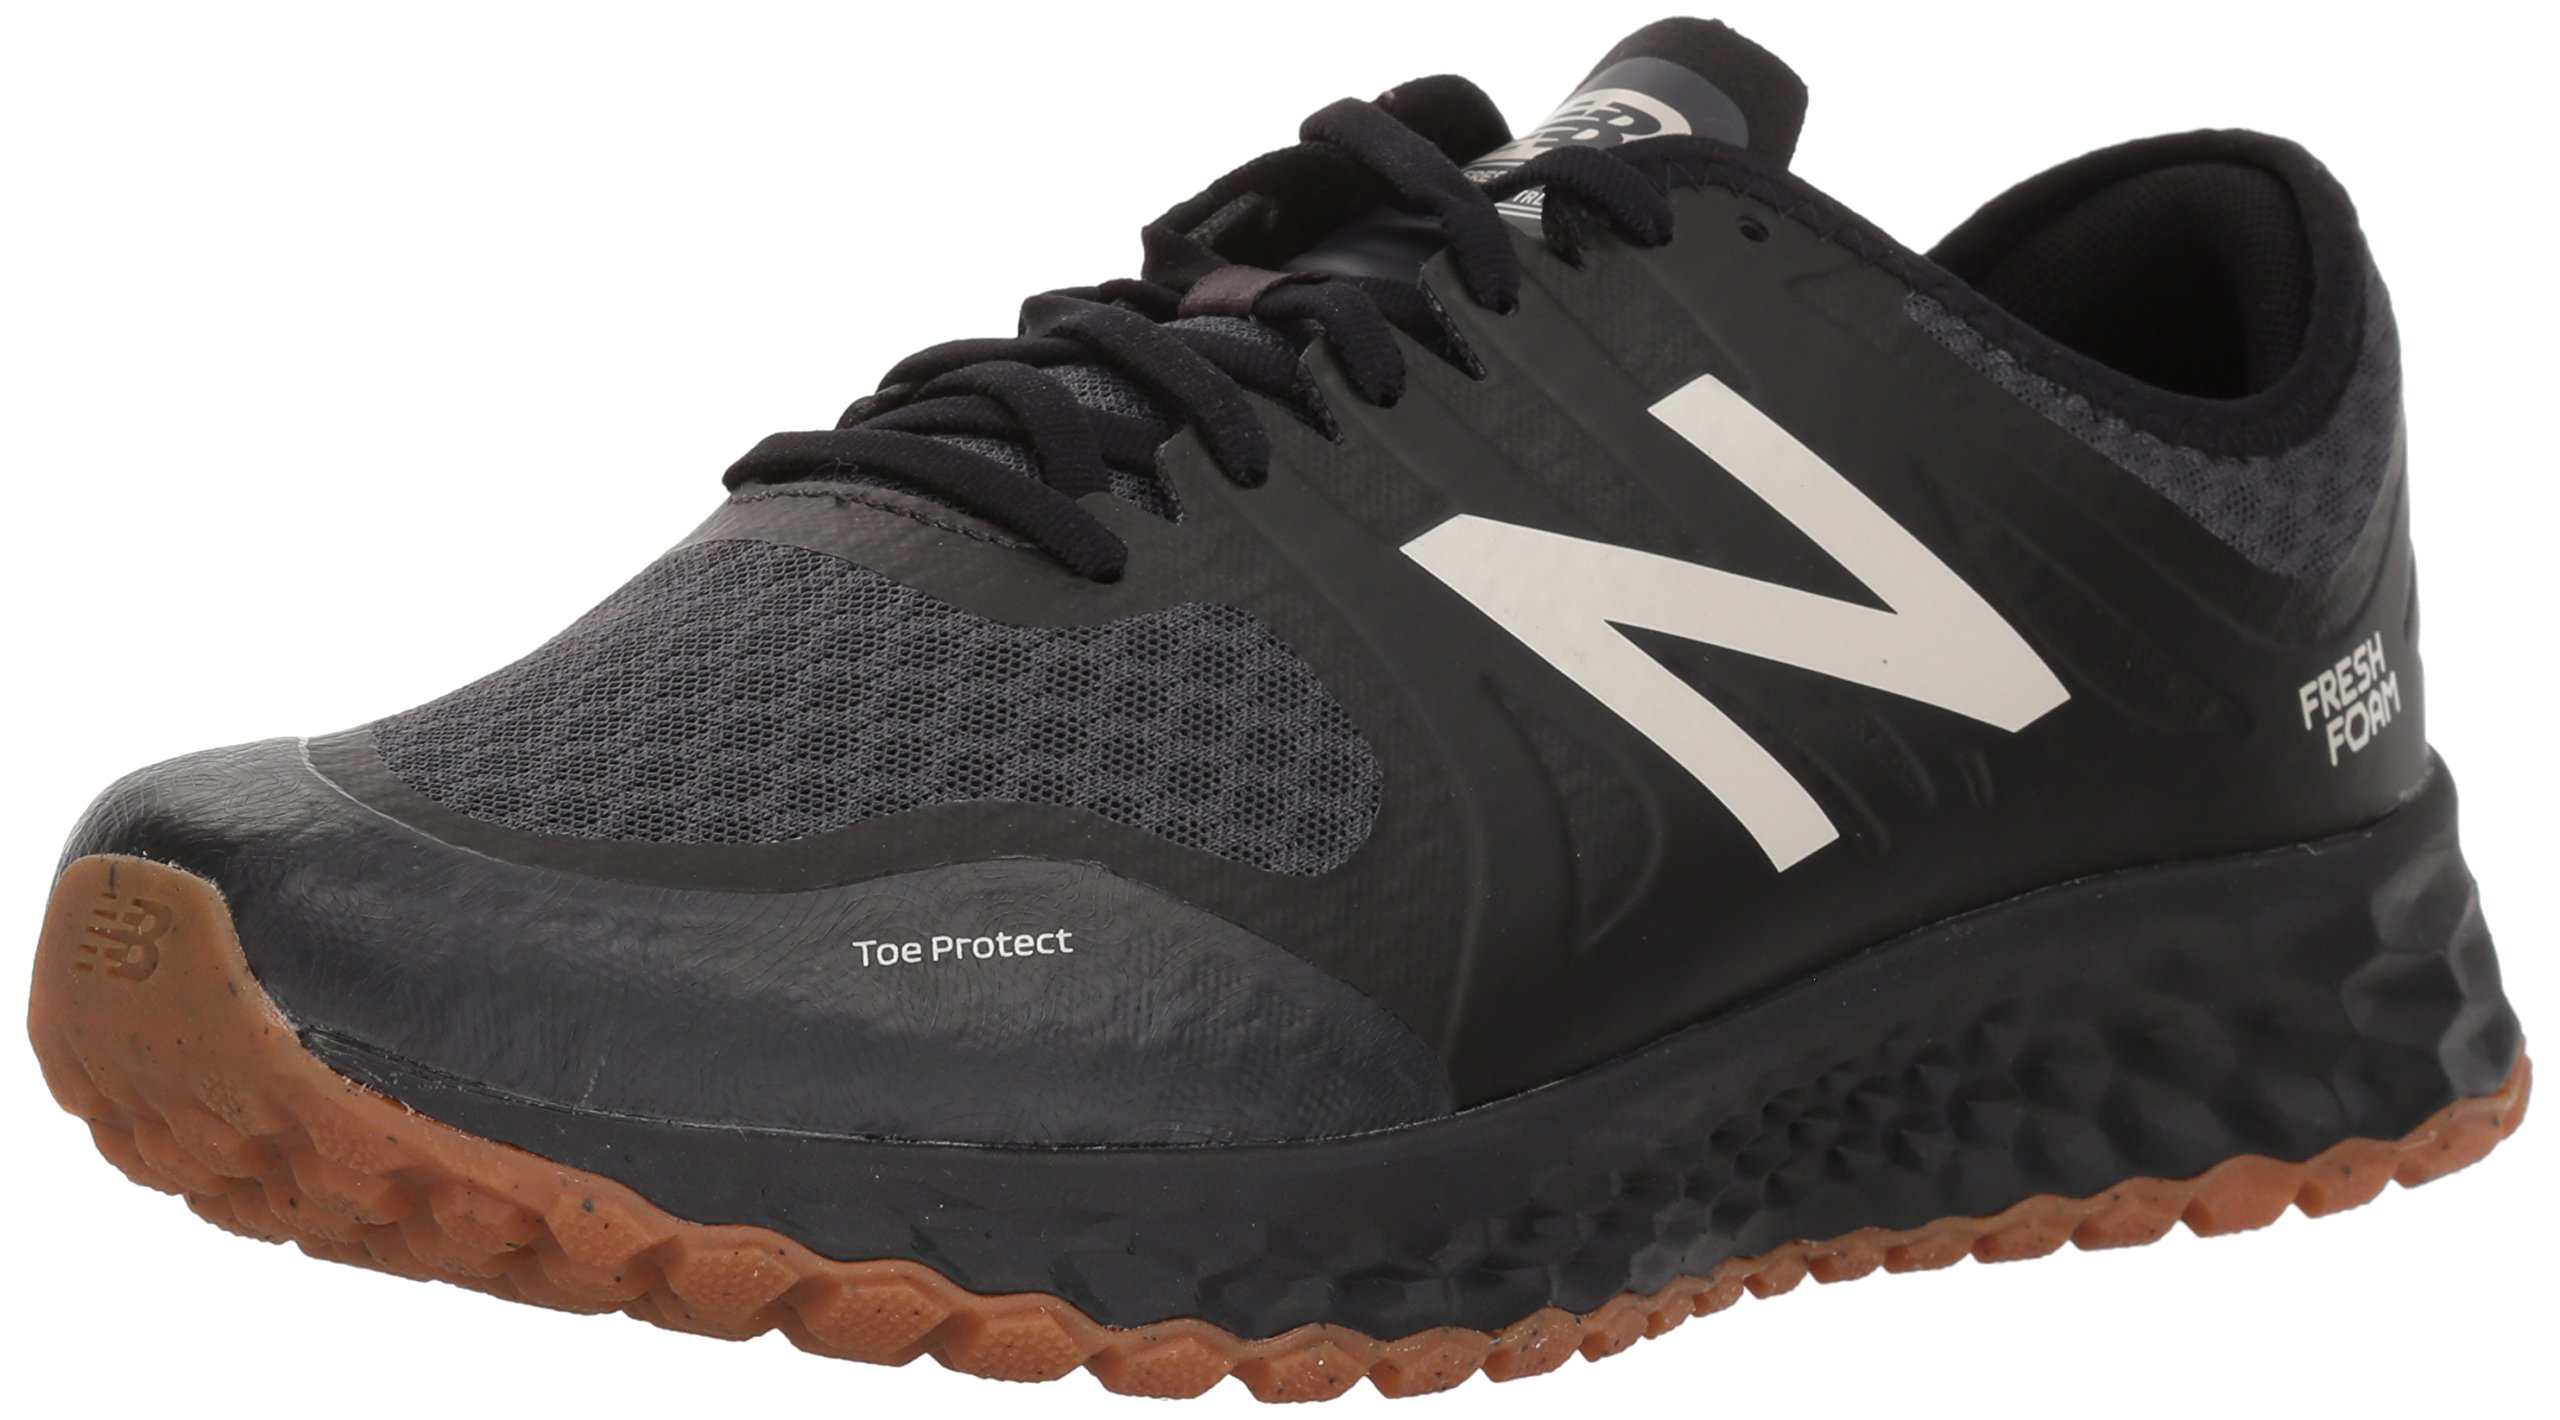 New Balance Men's Kaymin Trail v1 Fresh Foam Trail Running Shoe, Black, 10.5 4E US by New Balance